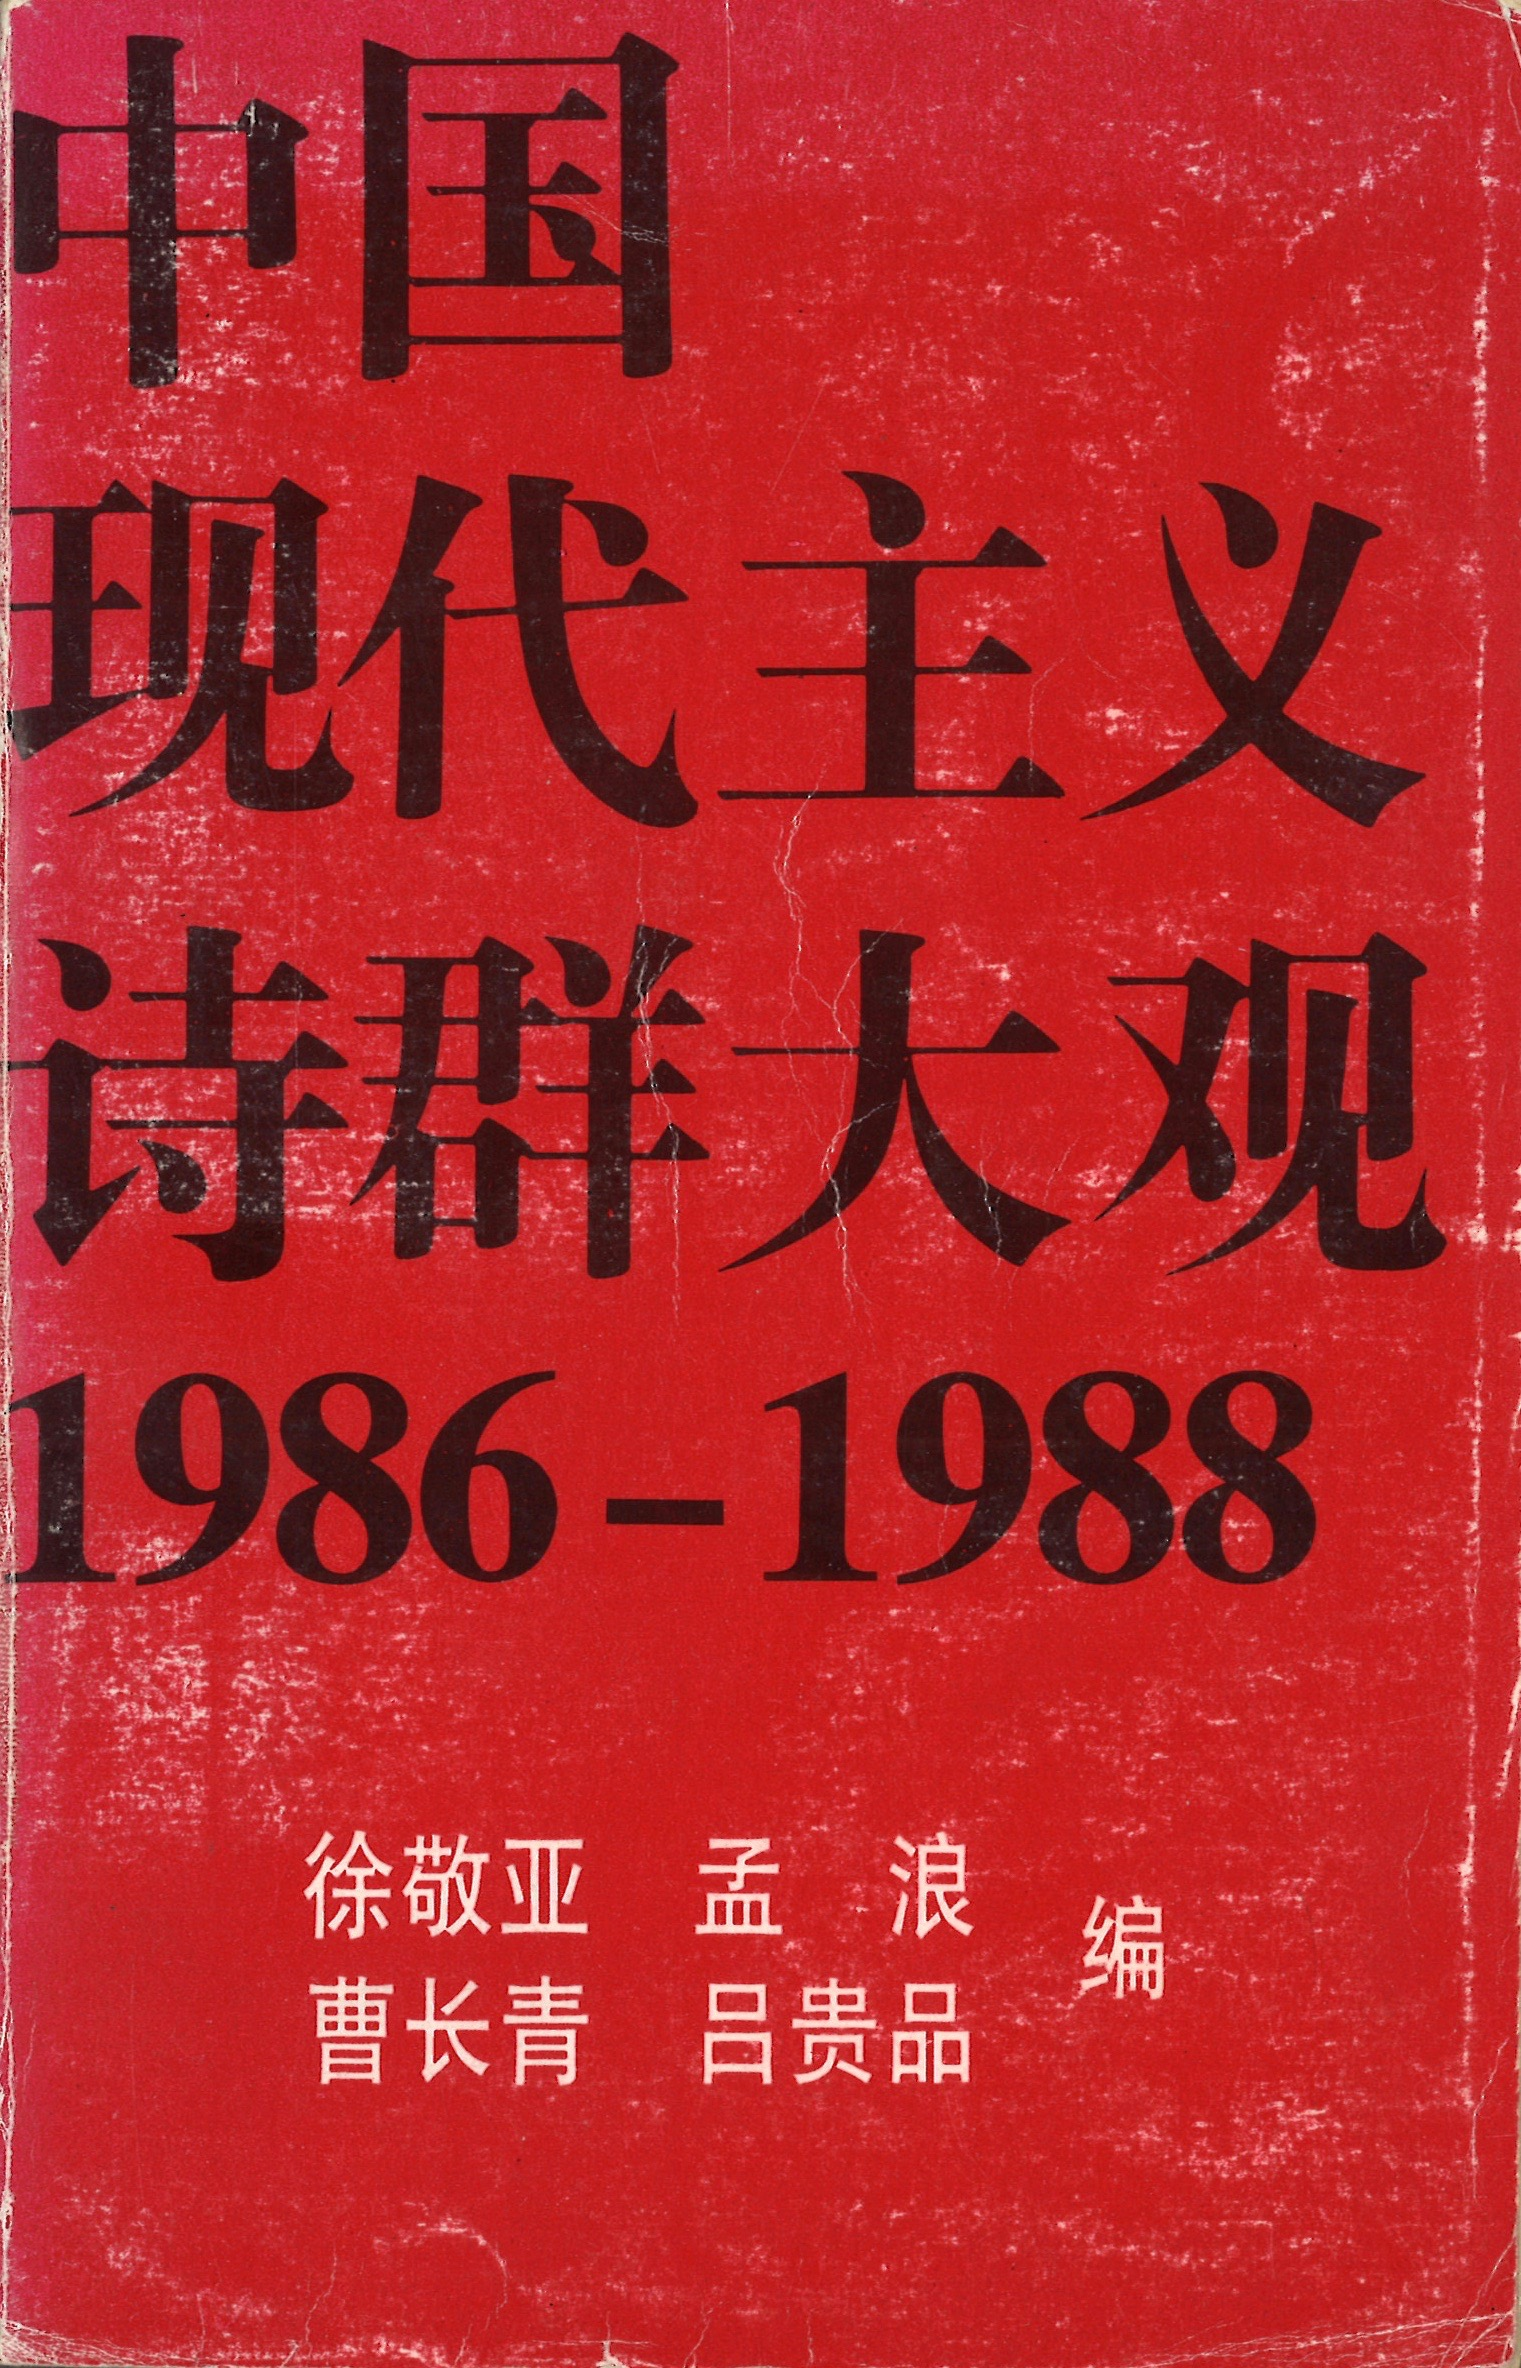 Walk On The Wild Side Snapshots Of Chinese Poetry Scene Mclc Misty Contact And Circuit Board Cleaner Iii Aerosol Can Reviews Xu Jingya Et Als Overview Modernist Groups 19861988